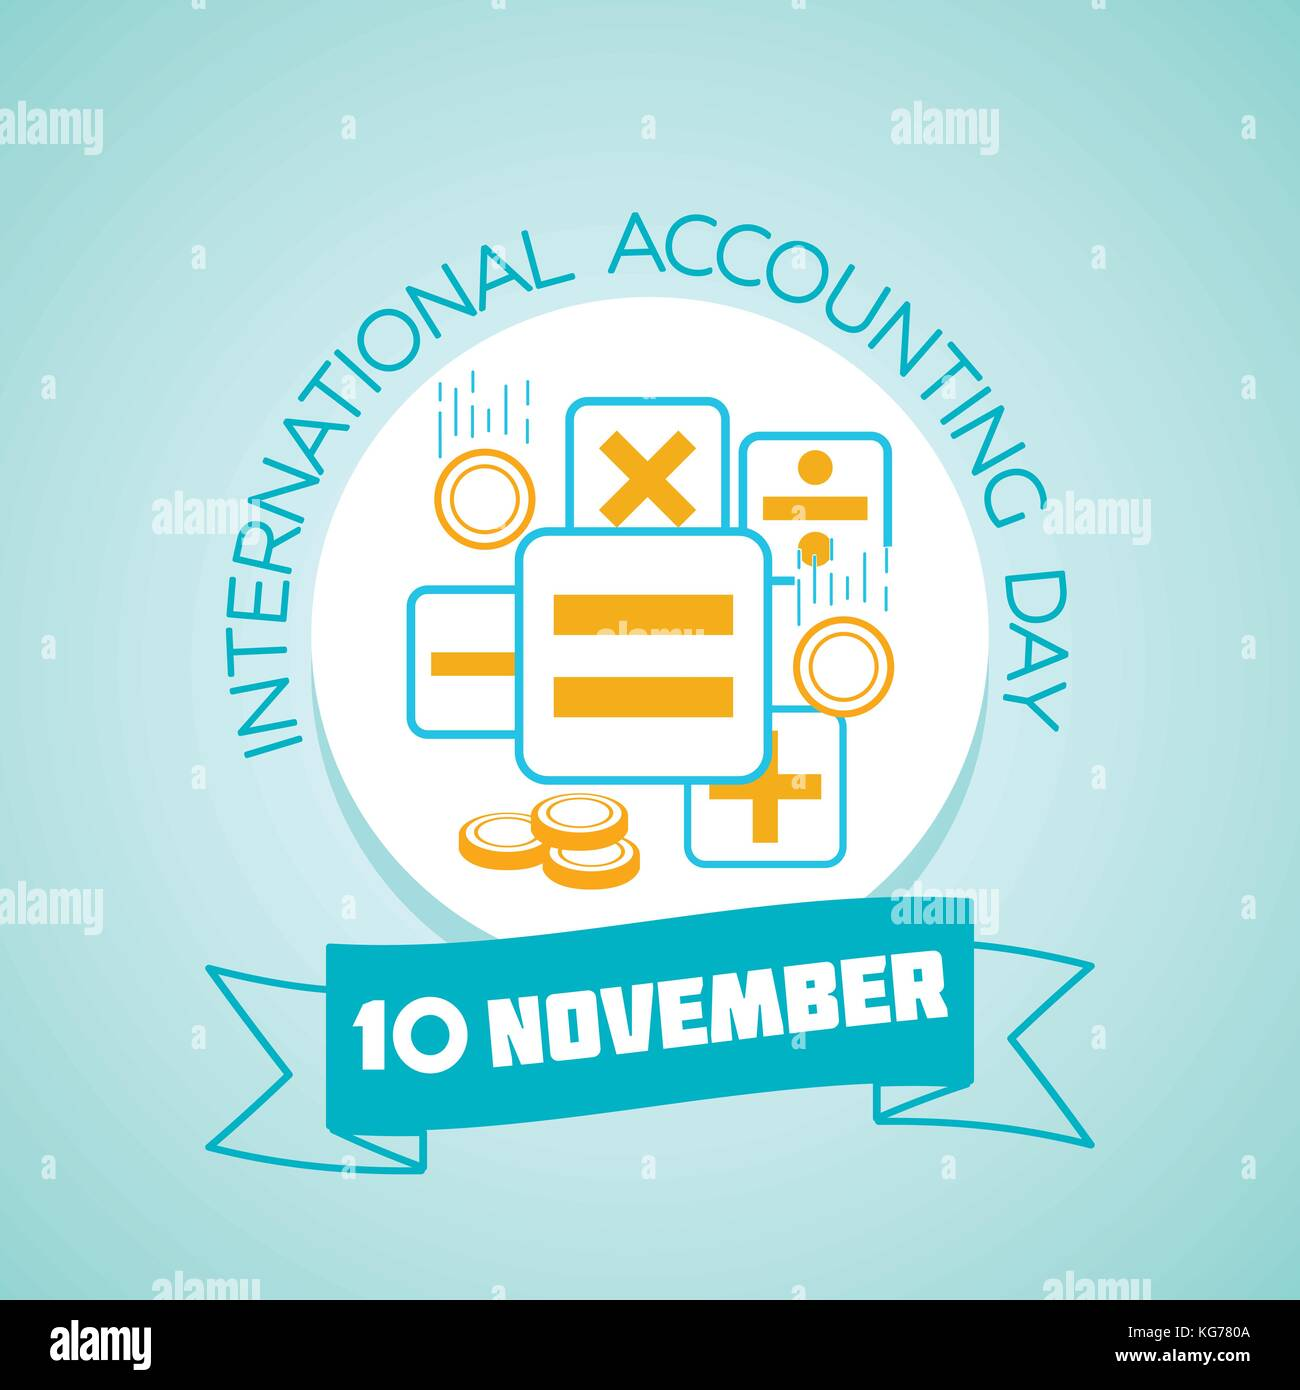 Calendar for each day on november 10 greeting card holiday stock calendar for each day on november 10 greeting card holiday international accounting day icon in the linear style kristyandbryce Images